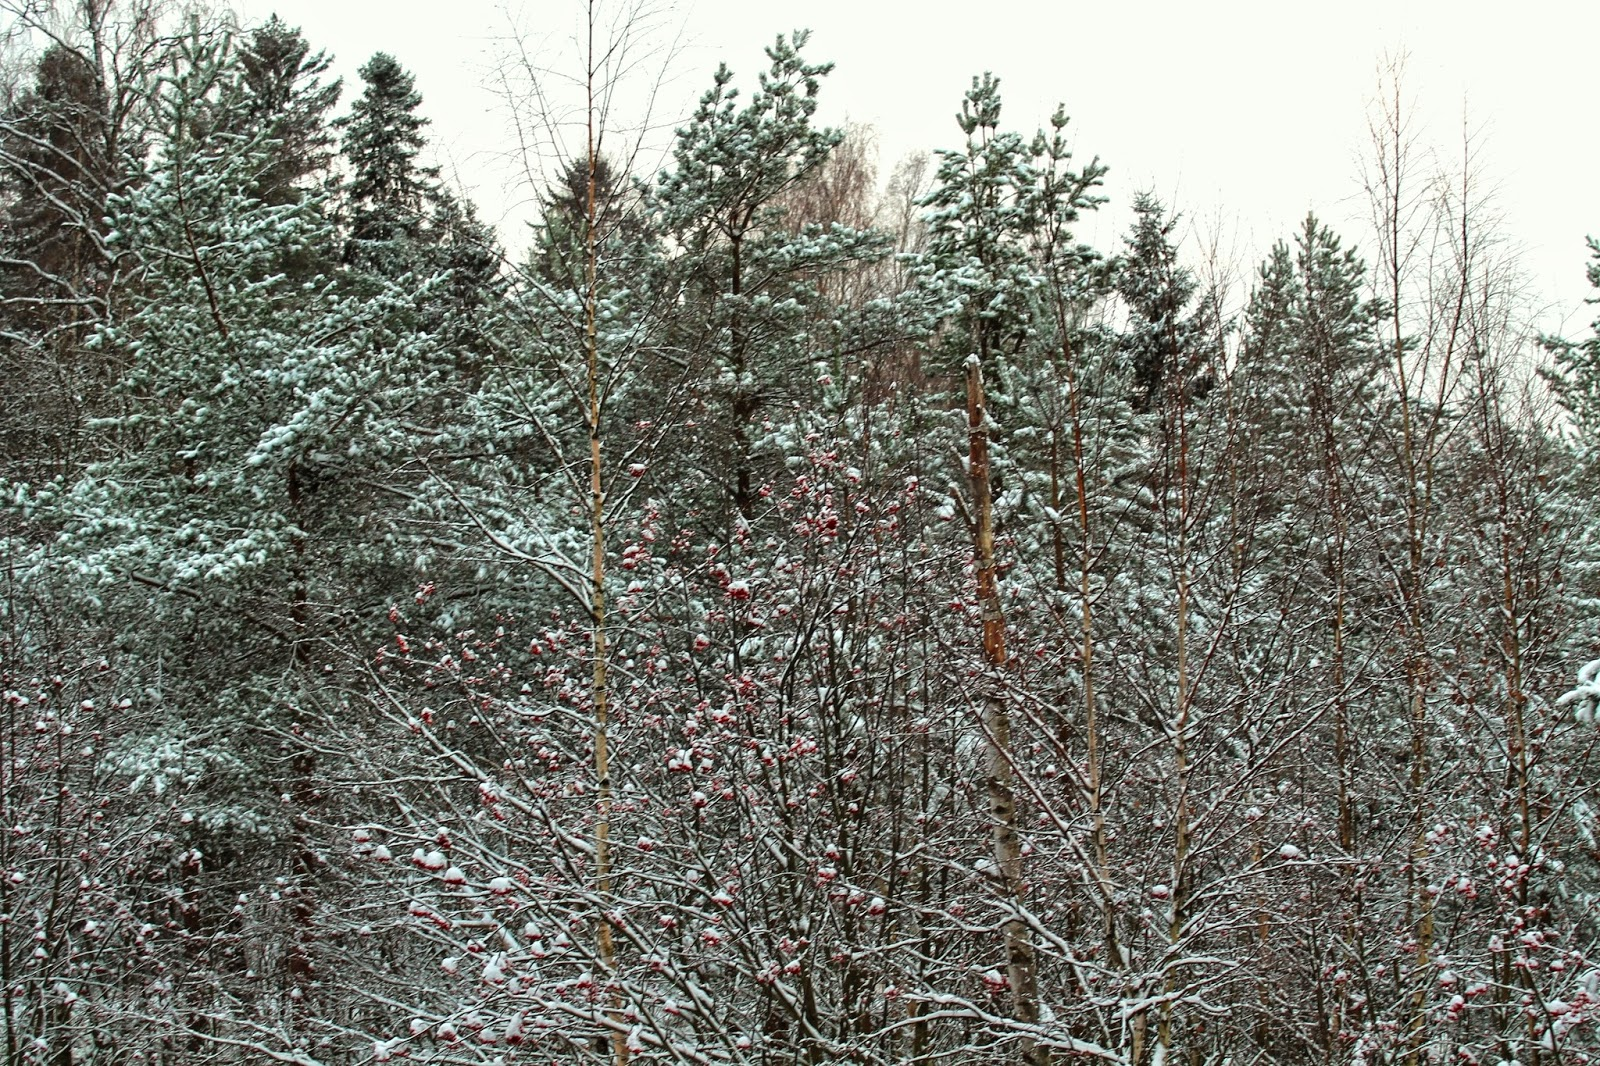 landscape from my window at winter time: Finland, Espoo, snow and trees